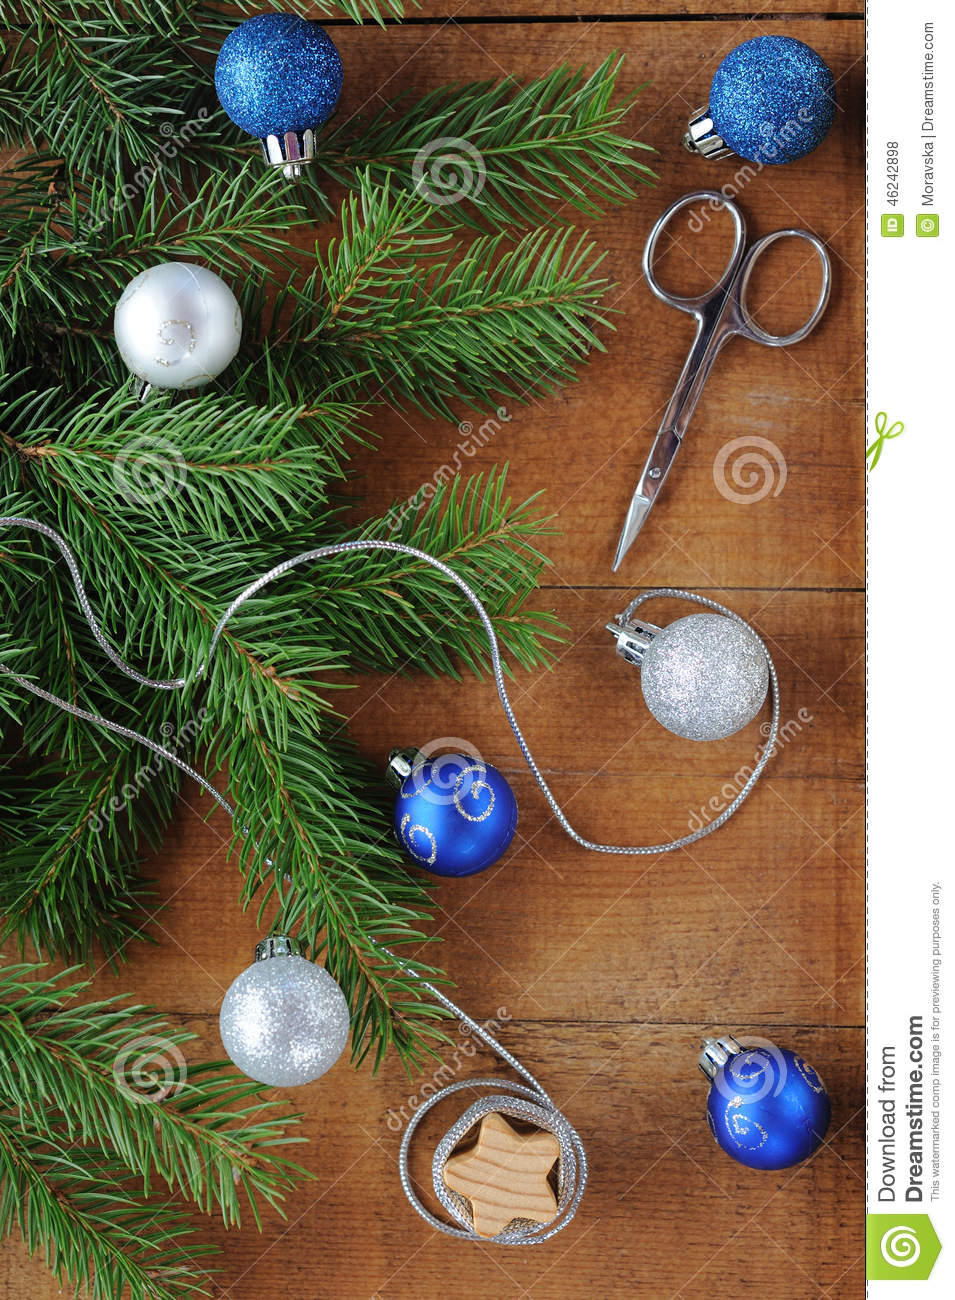 Christmas Card with decorations - silver thread, scissors, xmas tree and color balls.